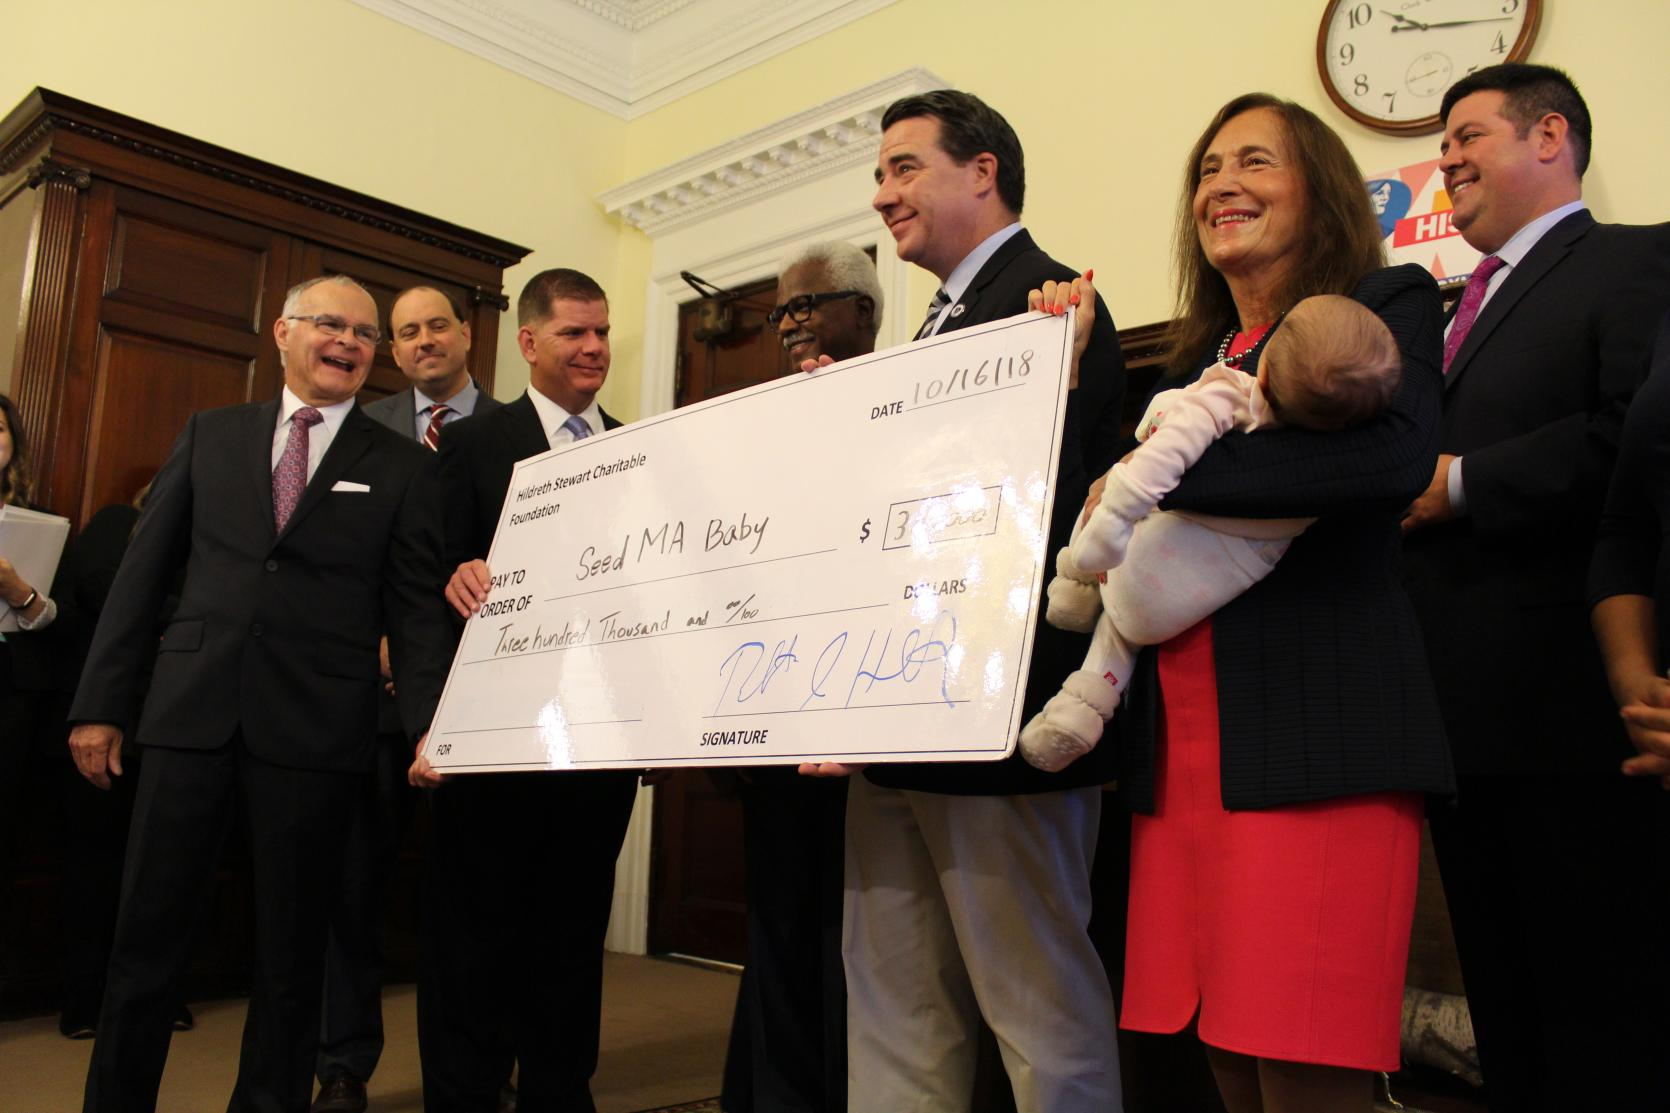 Photo of Treasurer Goldberg holding a baby in front a check for SeedMA Baby, standing across from Boston Mayor Marty Walsh